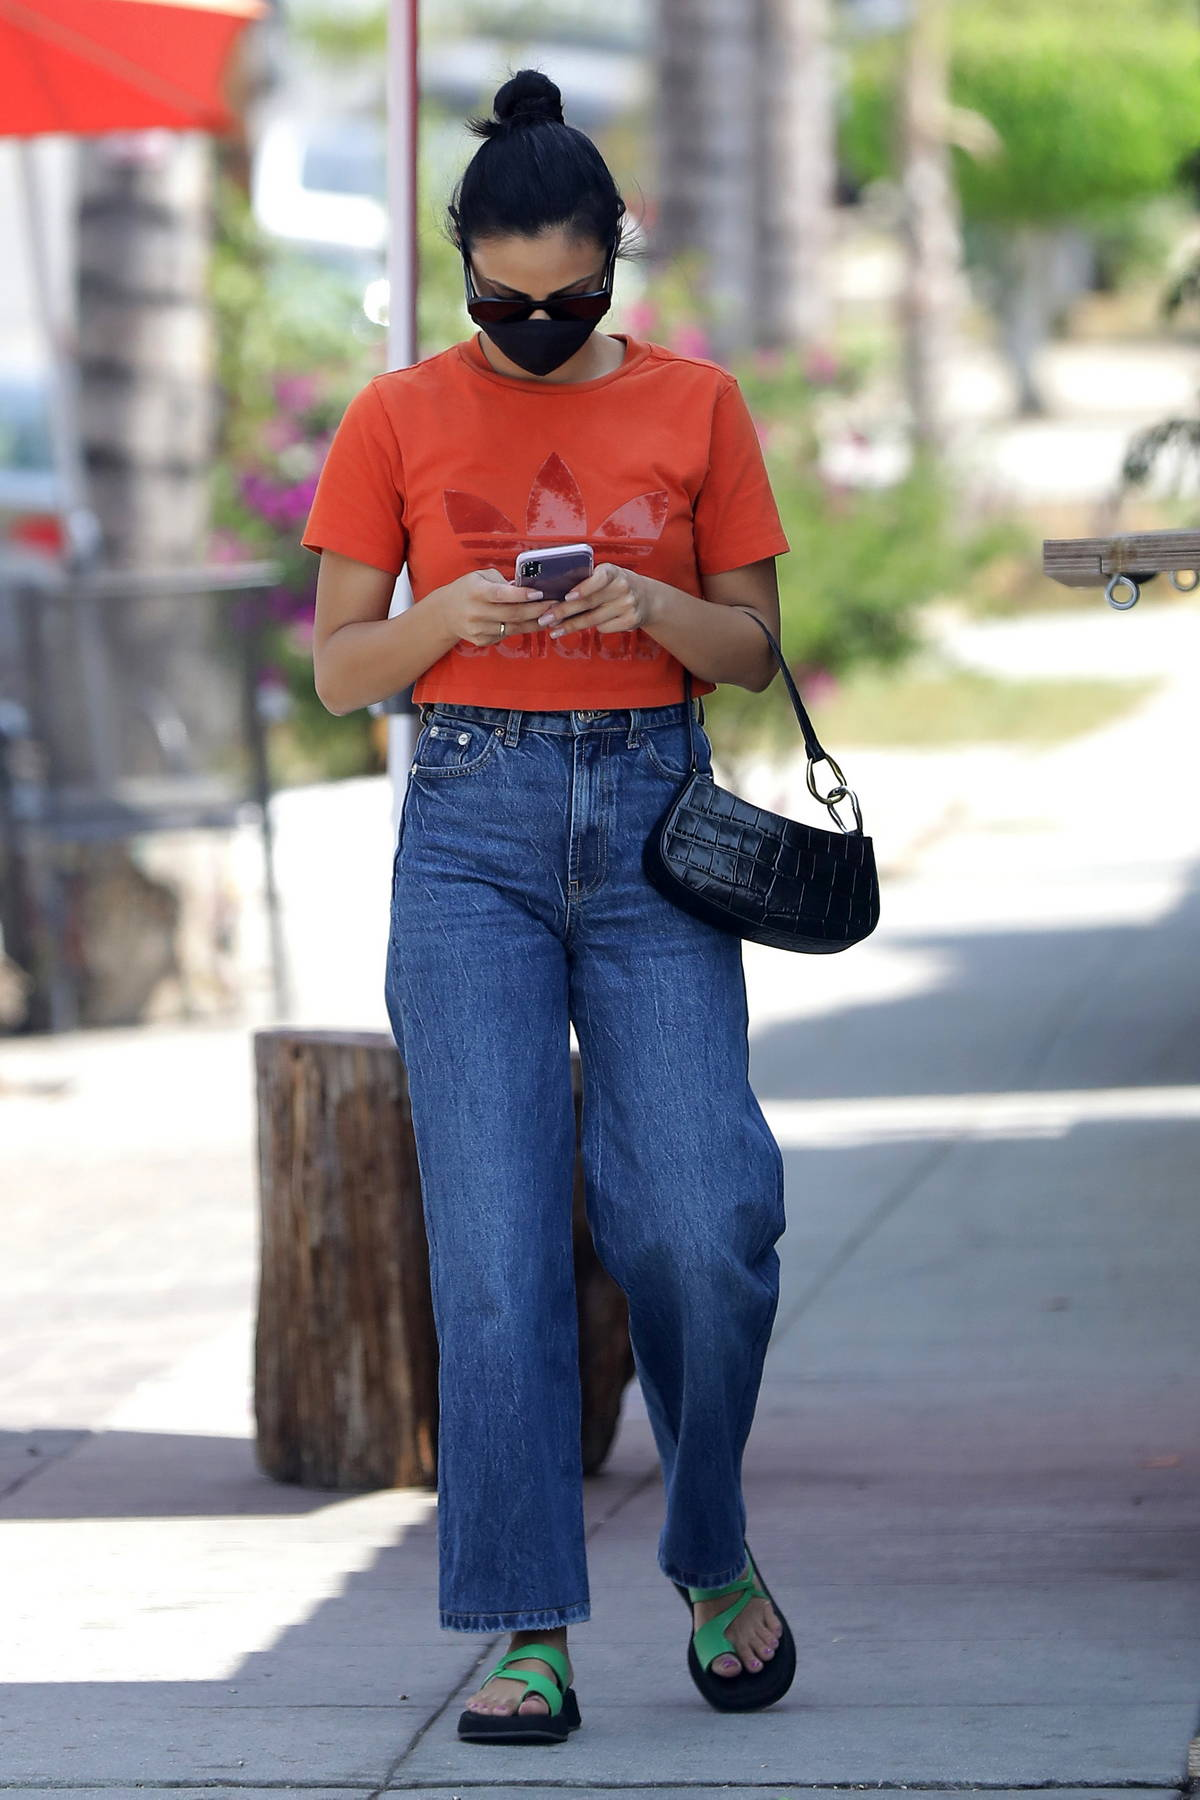 Camila Mendes goes casual in an orange Adidas tee and jeans while stepping out in Los Angeles